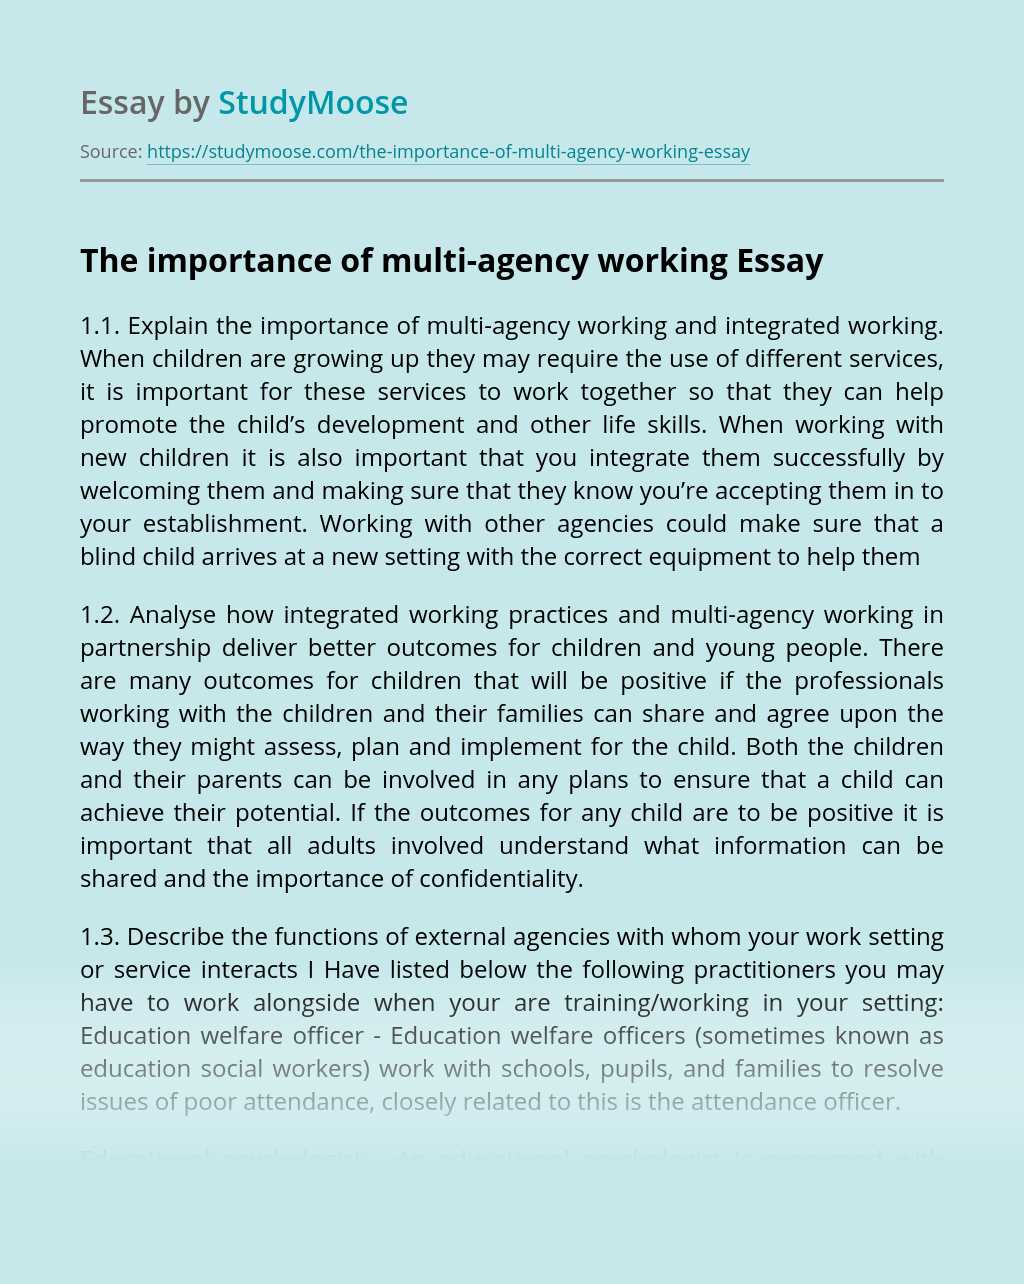 The importance of multi-agency working